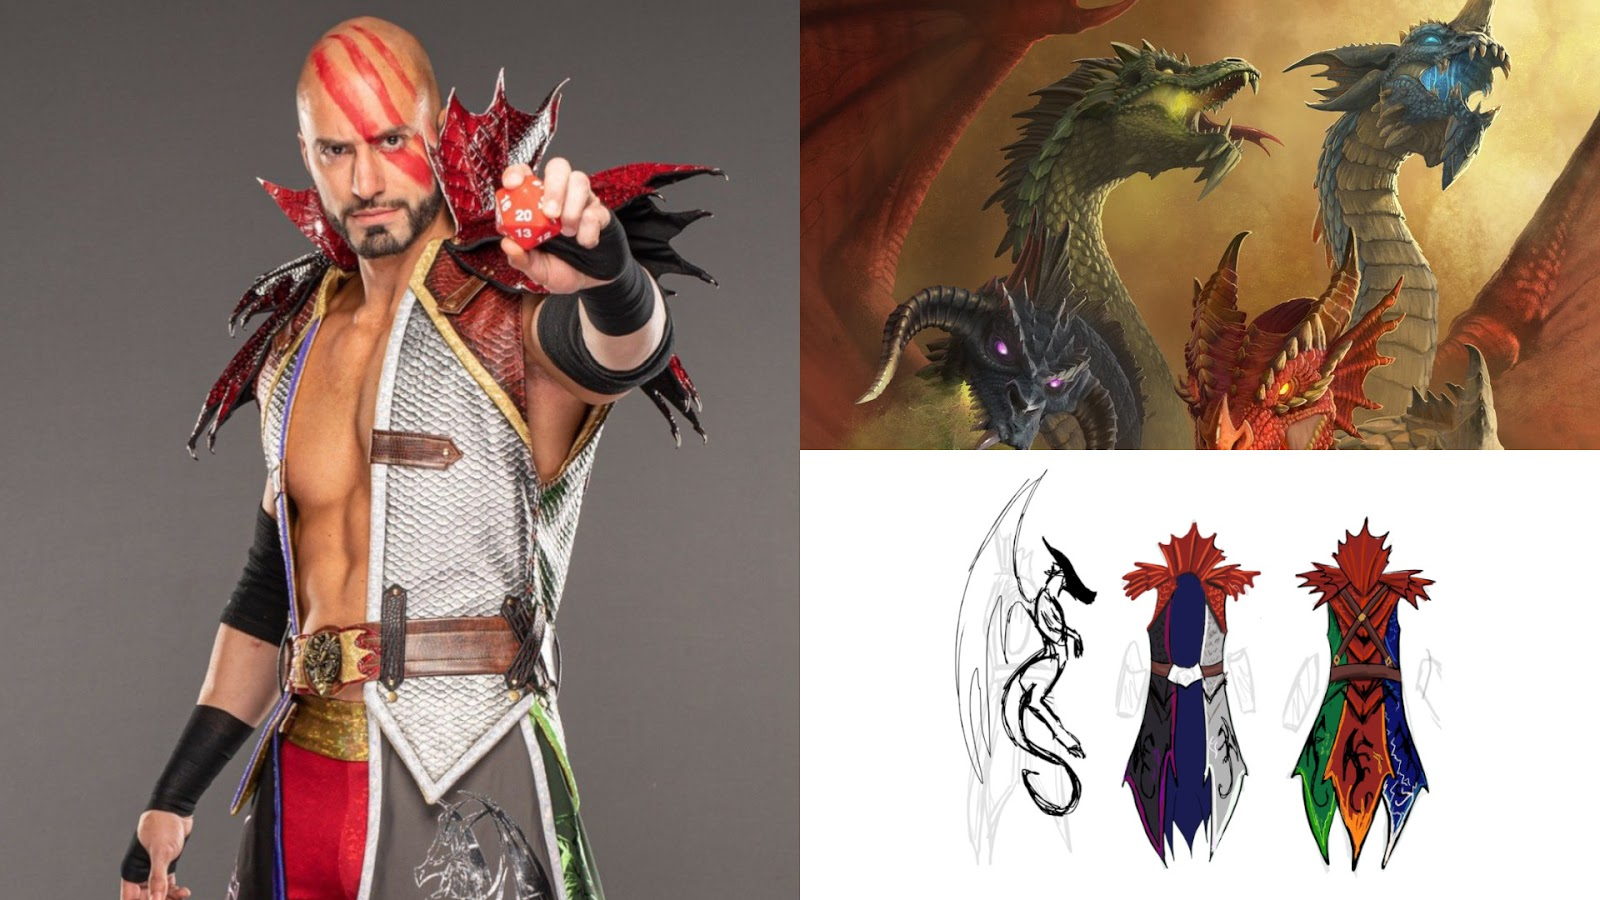 Board Game News Collider AEW Wrestler Brandon Cutler Tiamat Costume DnD Dungeons and Dragons